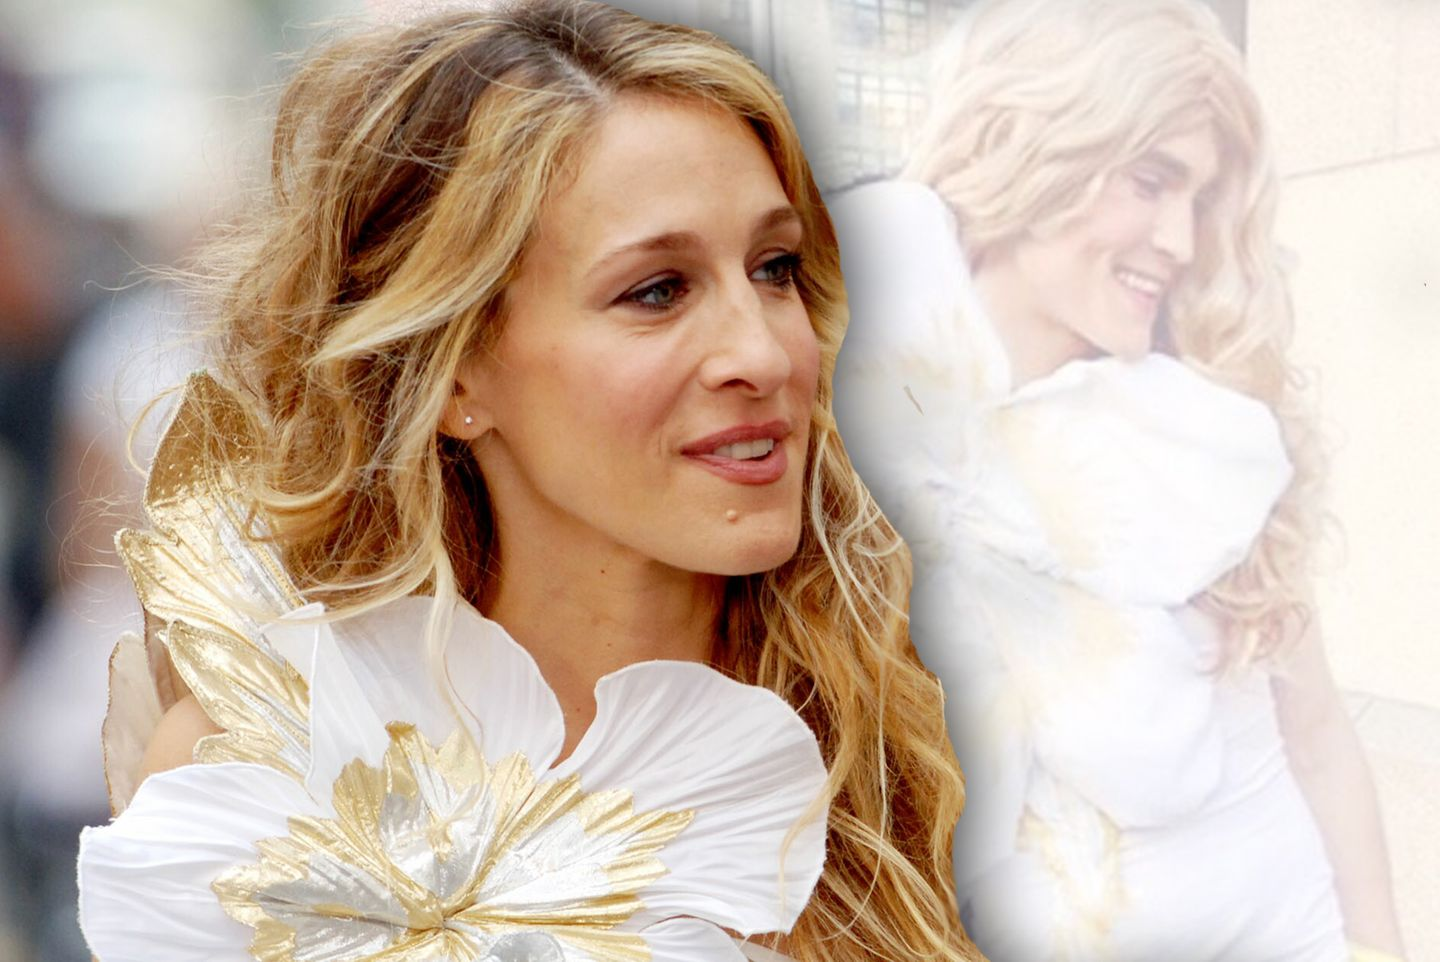 """Sarah Jessica Parker als Carrie Bradshaw in """"Sex and the City""""."""